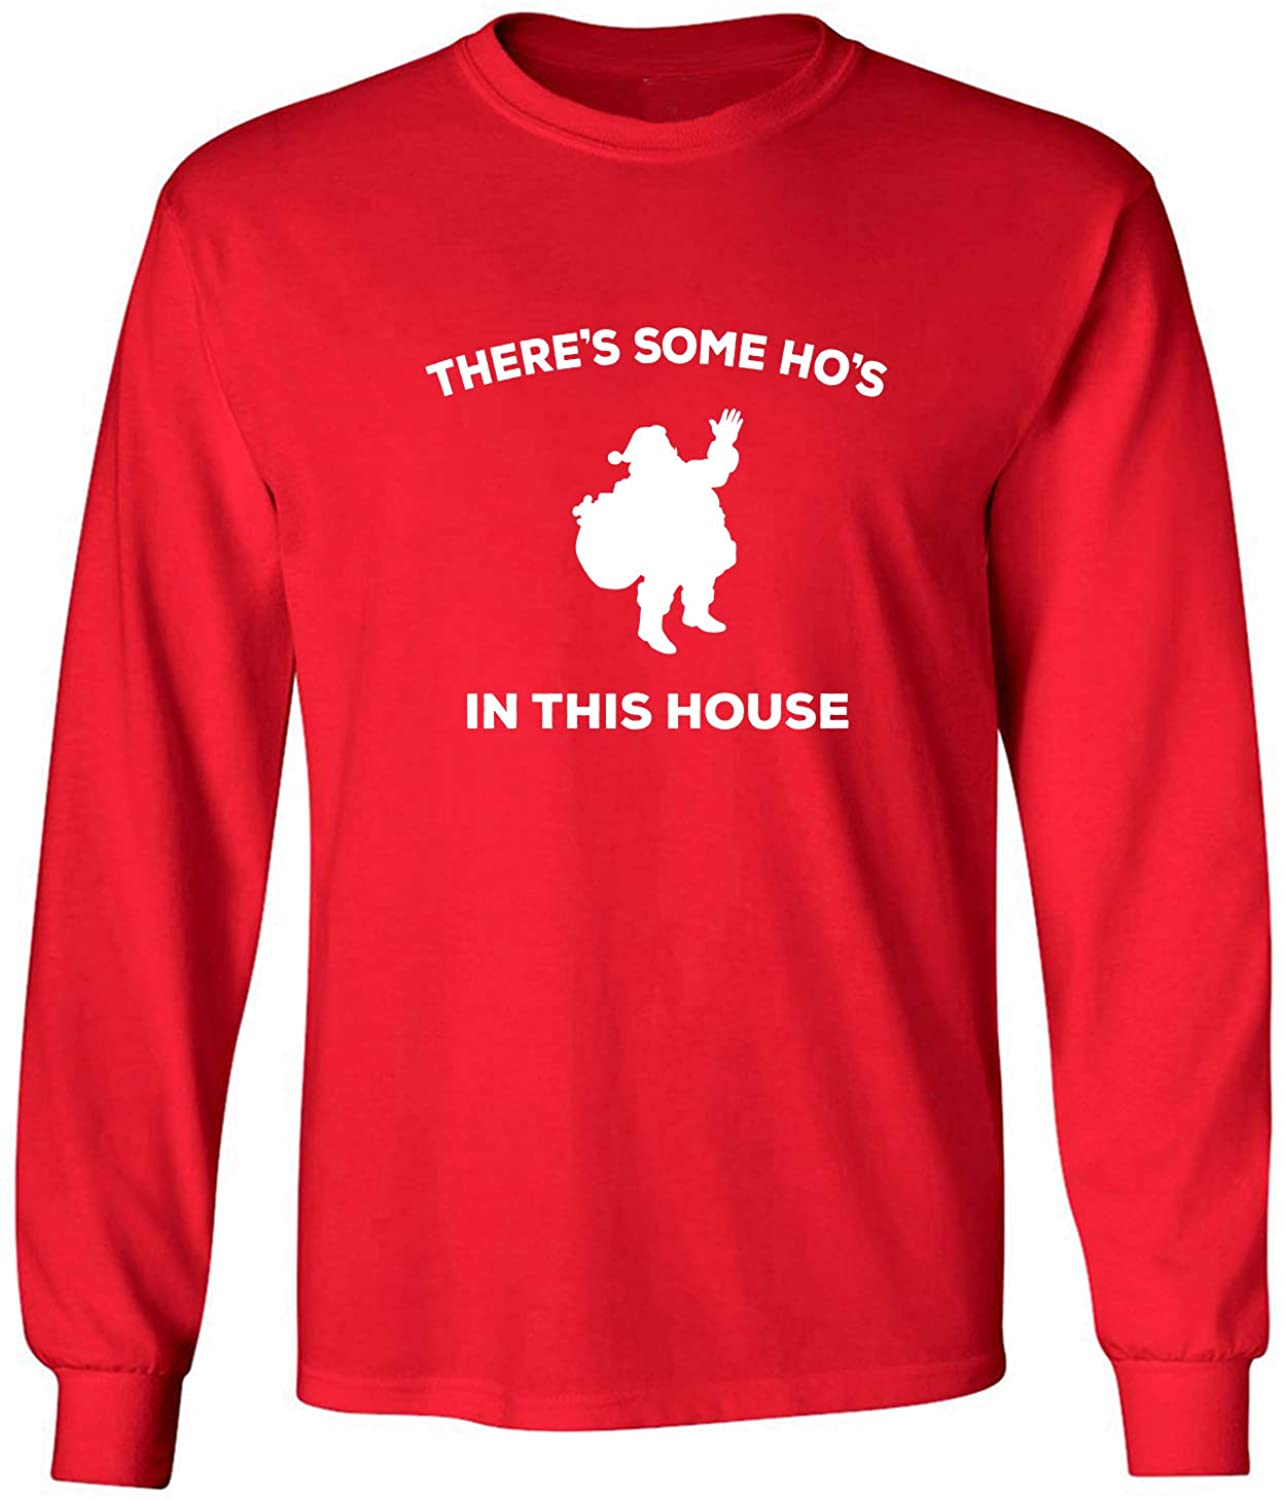 Theres Some Hos in This House Adult Long Sleeve T-Shirt in Red - X-Large